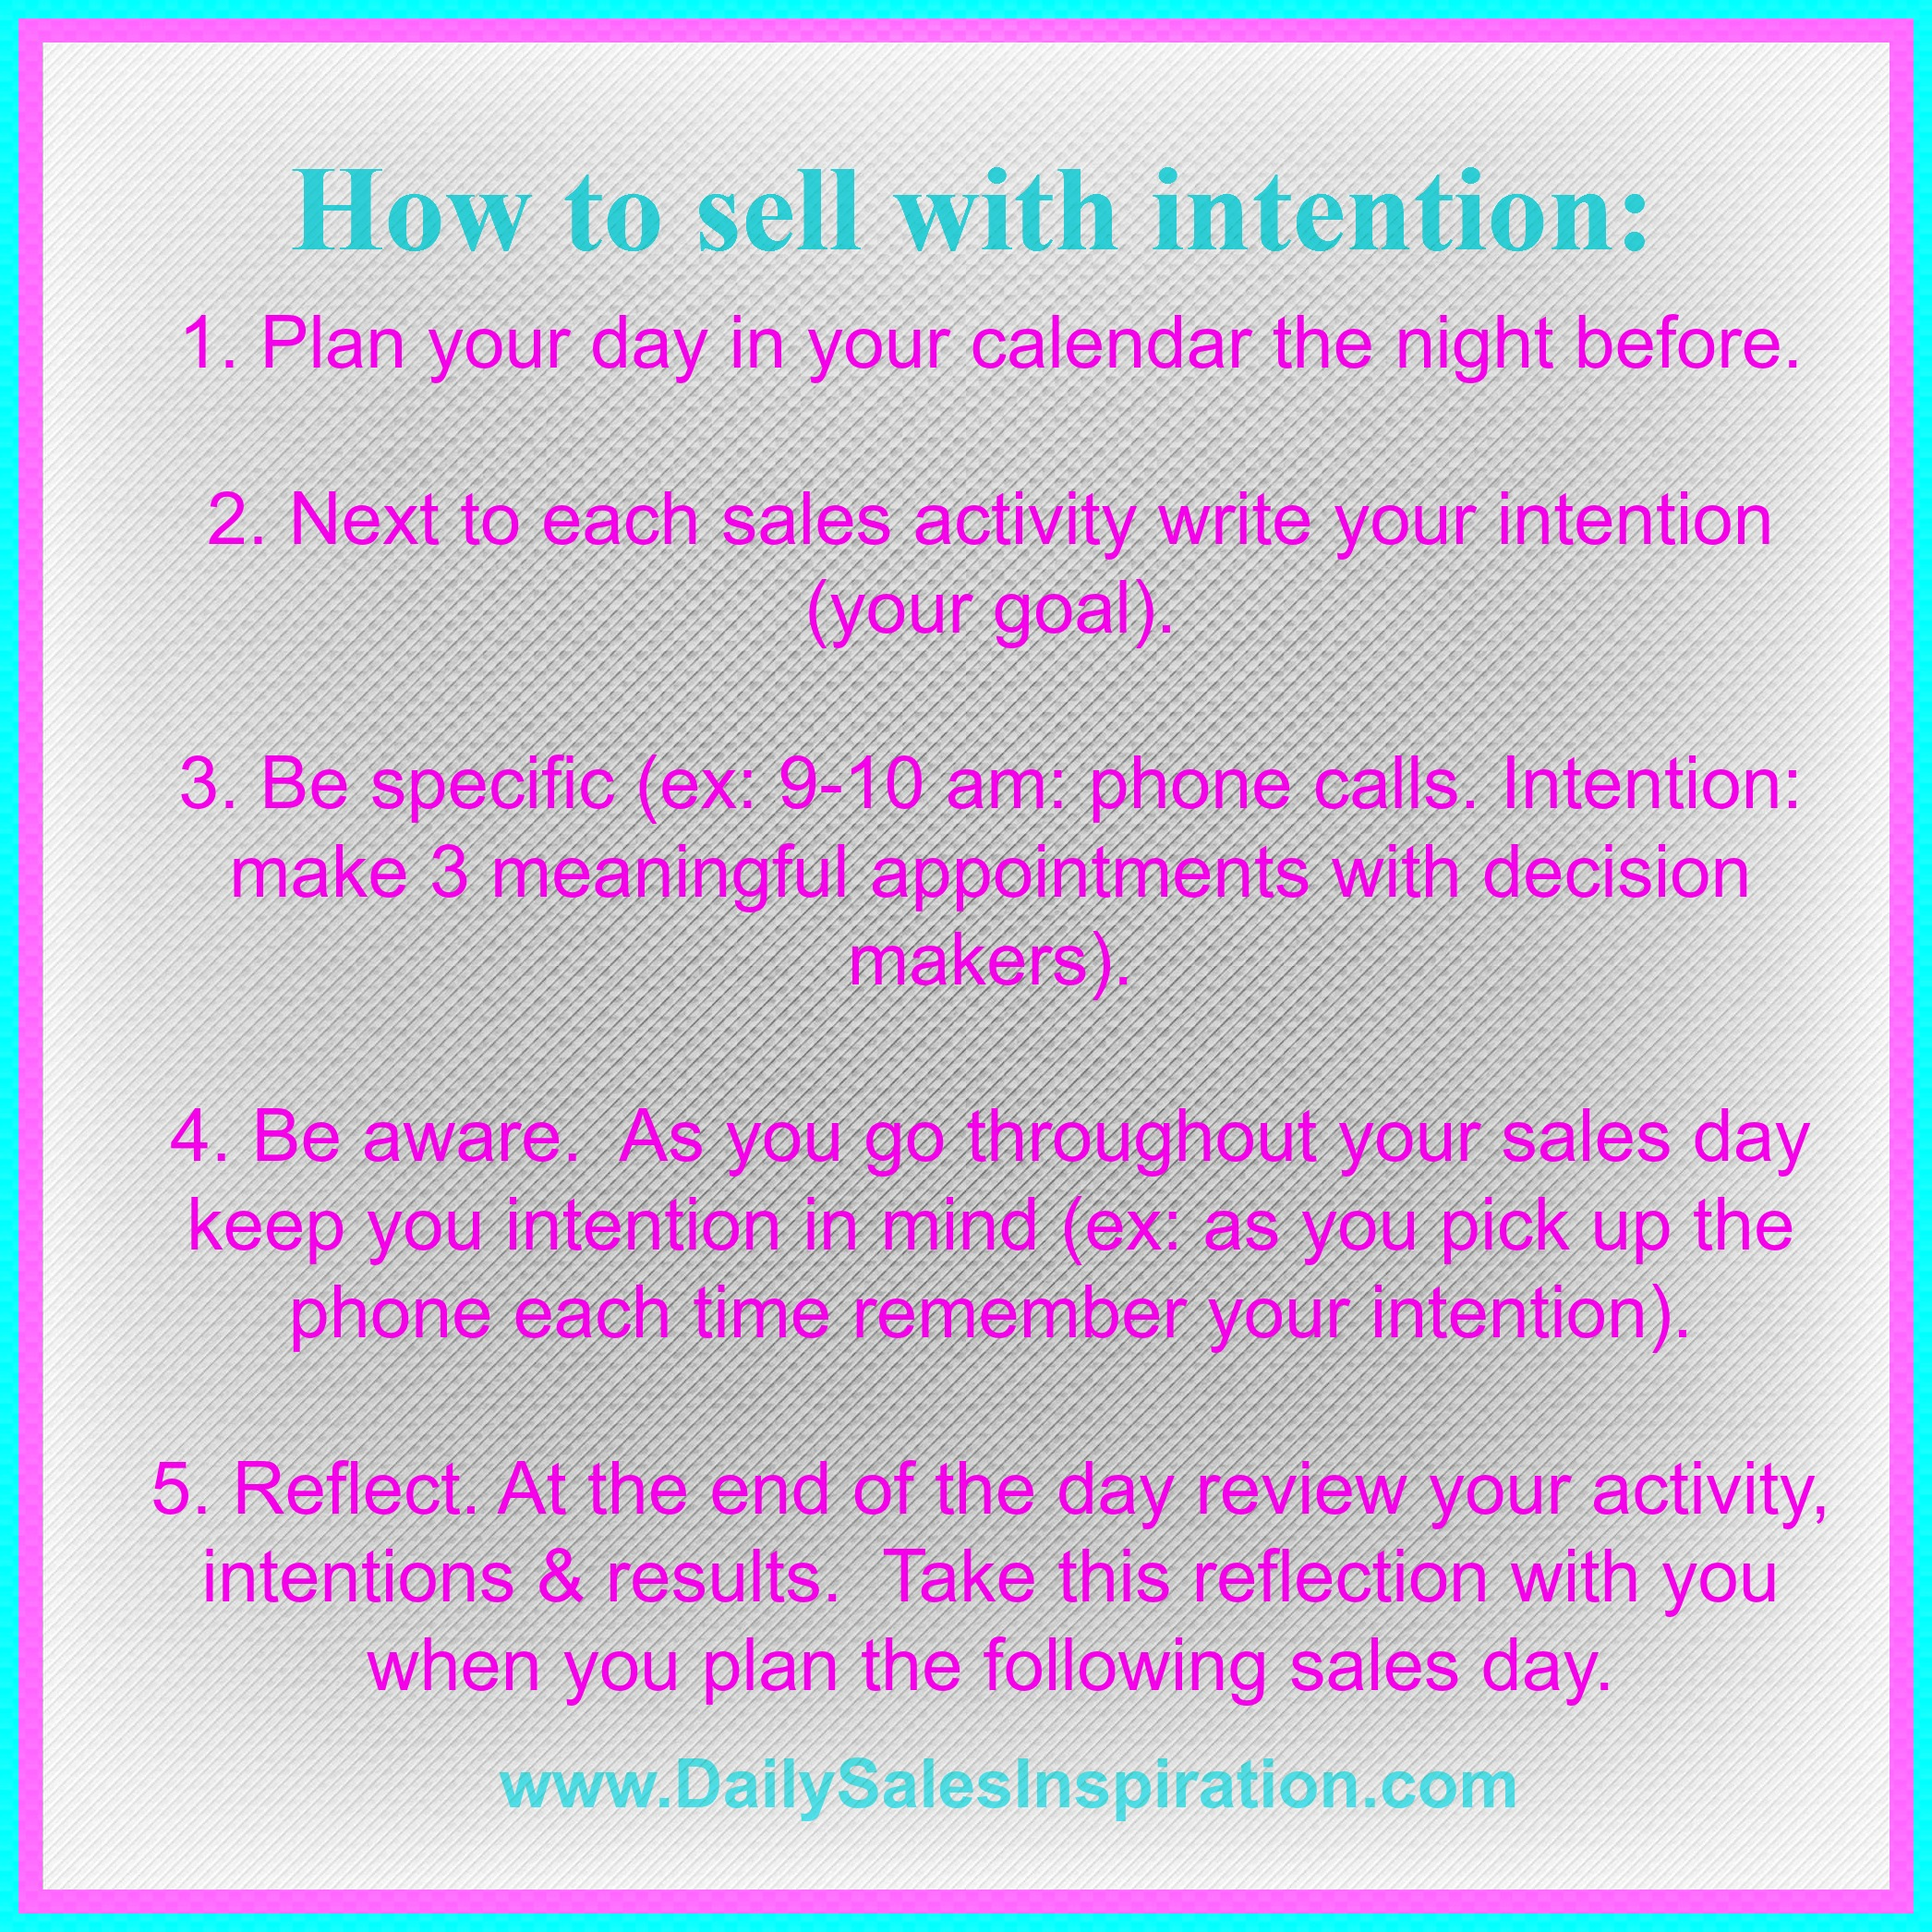 Selling: Daily Sales Inspiration